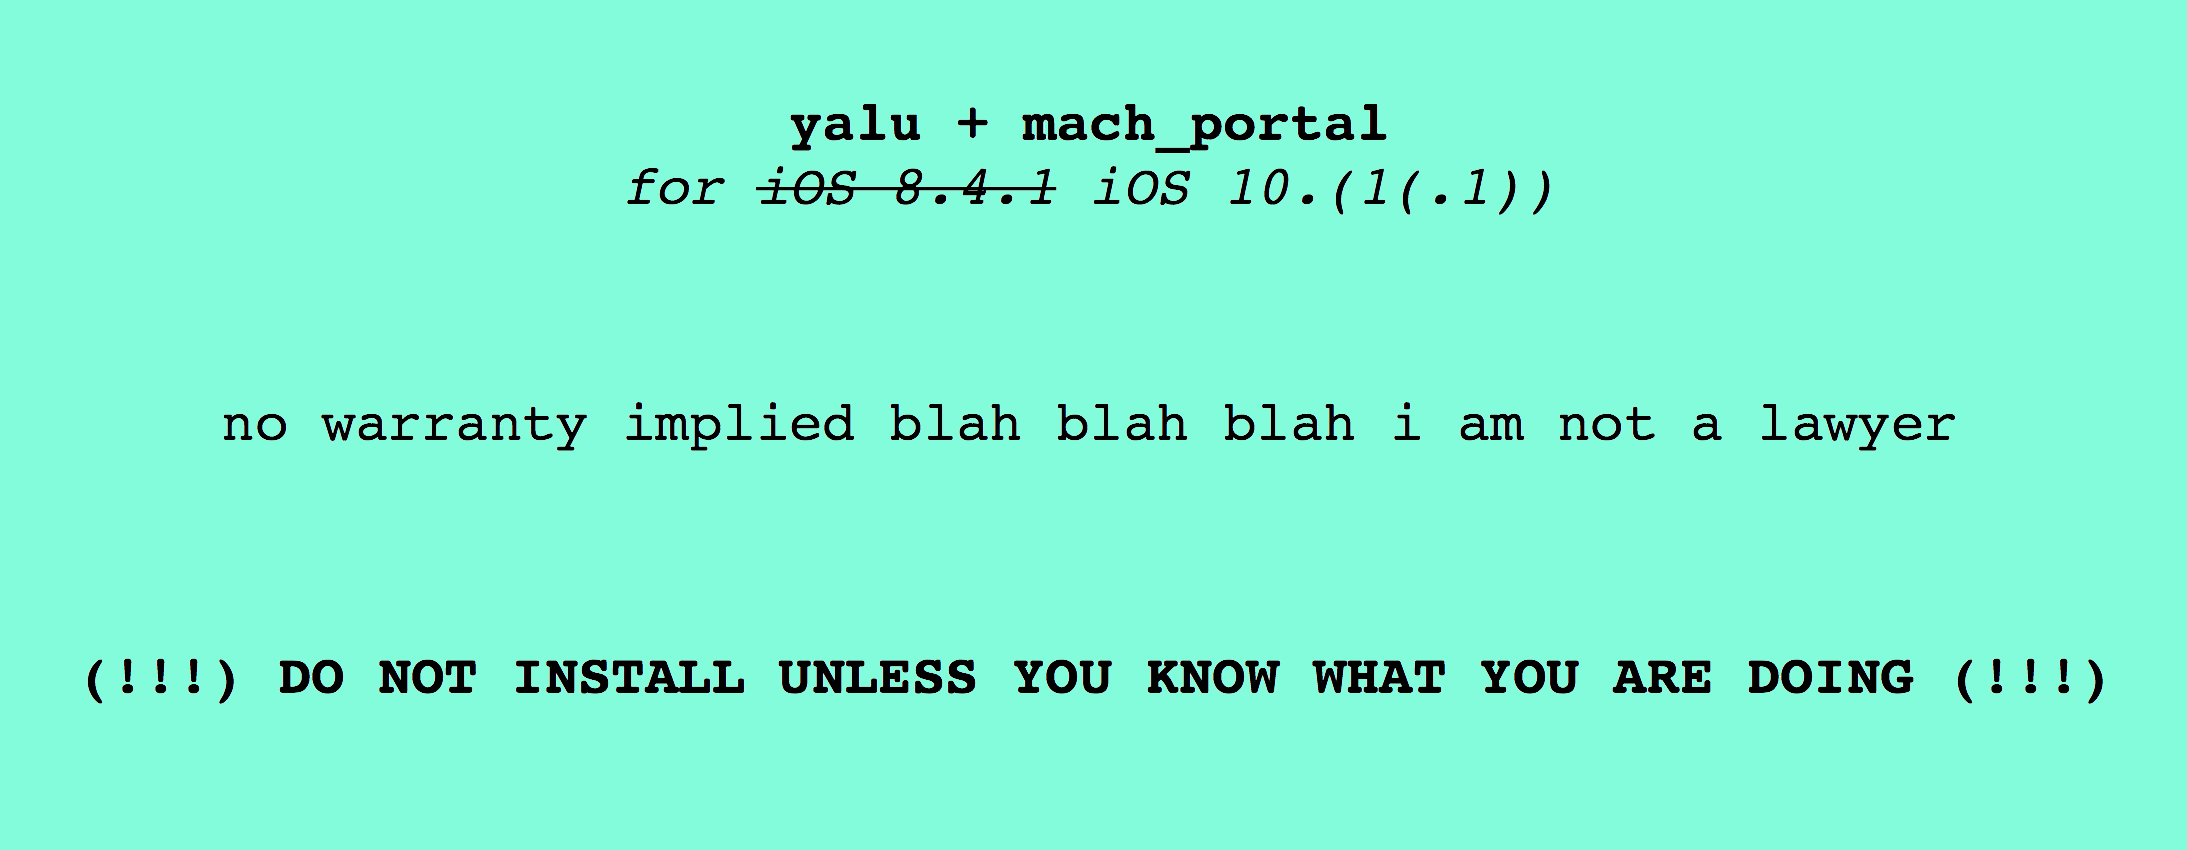 yalu-disclaimer-header